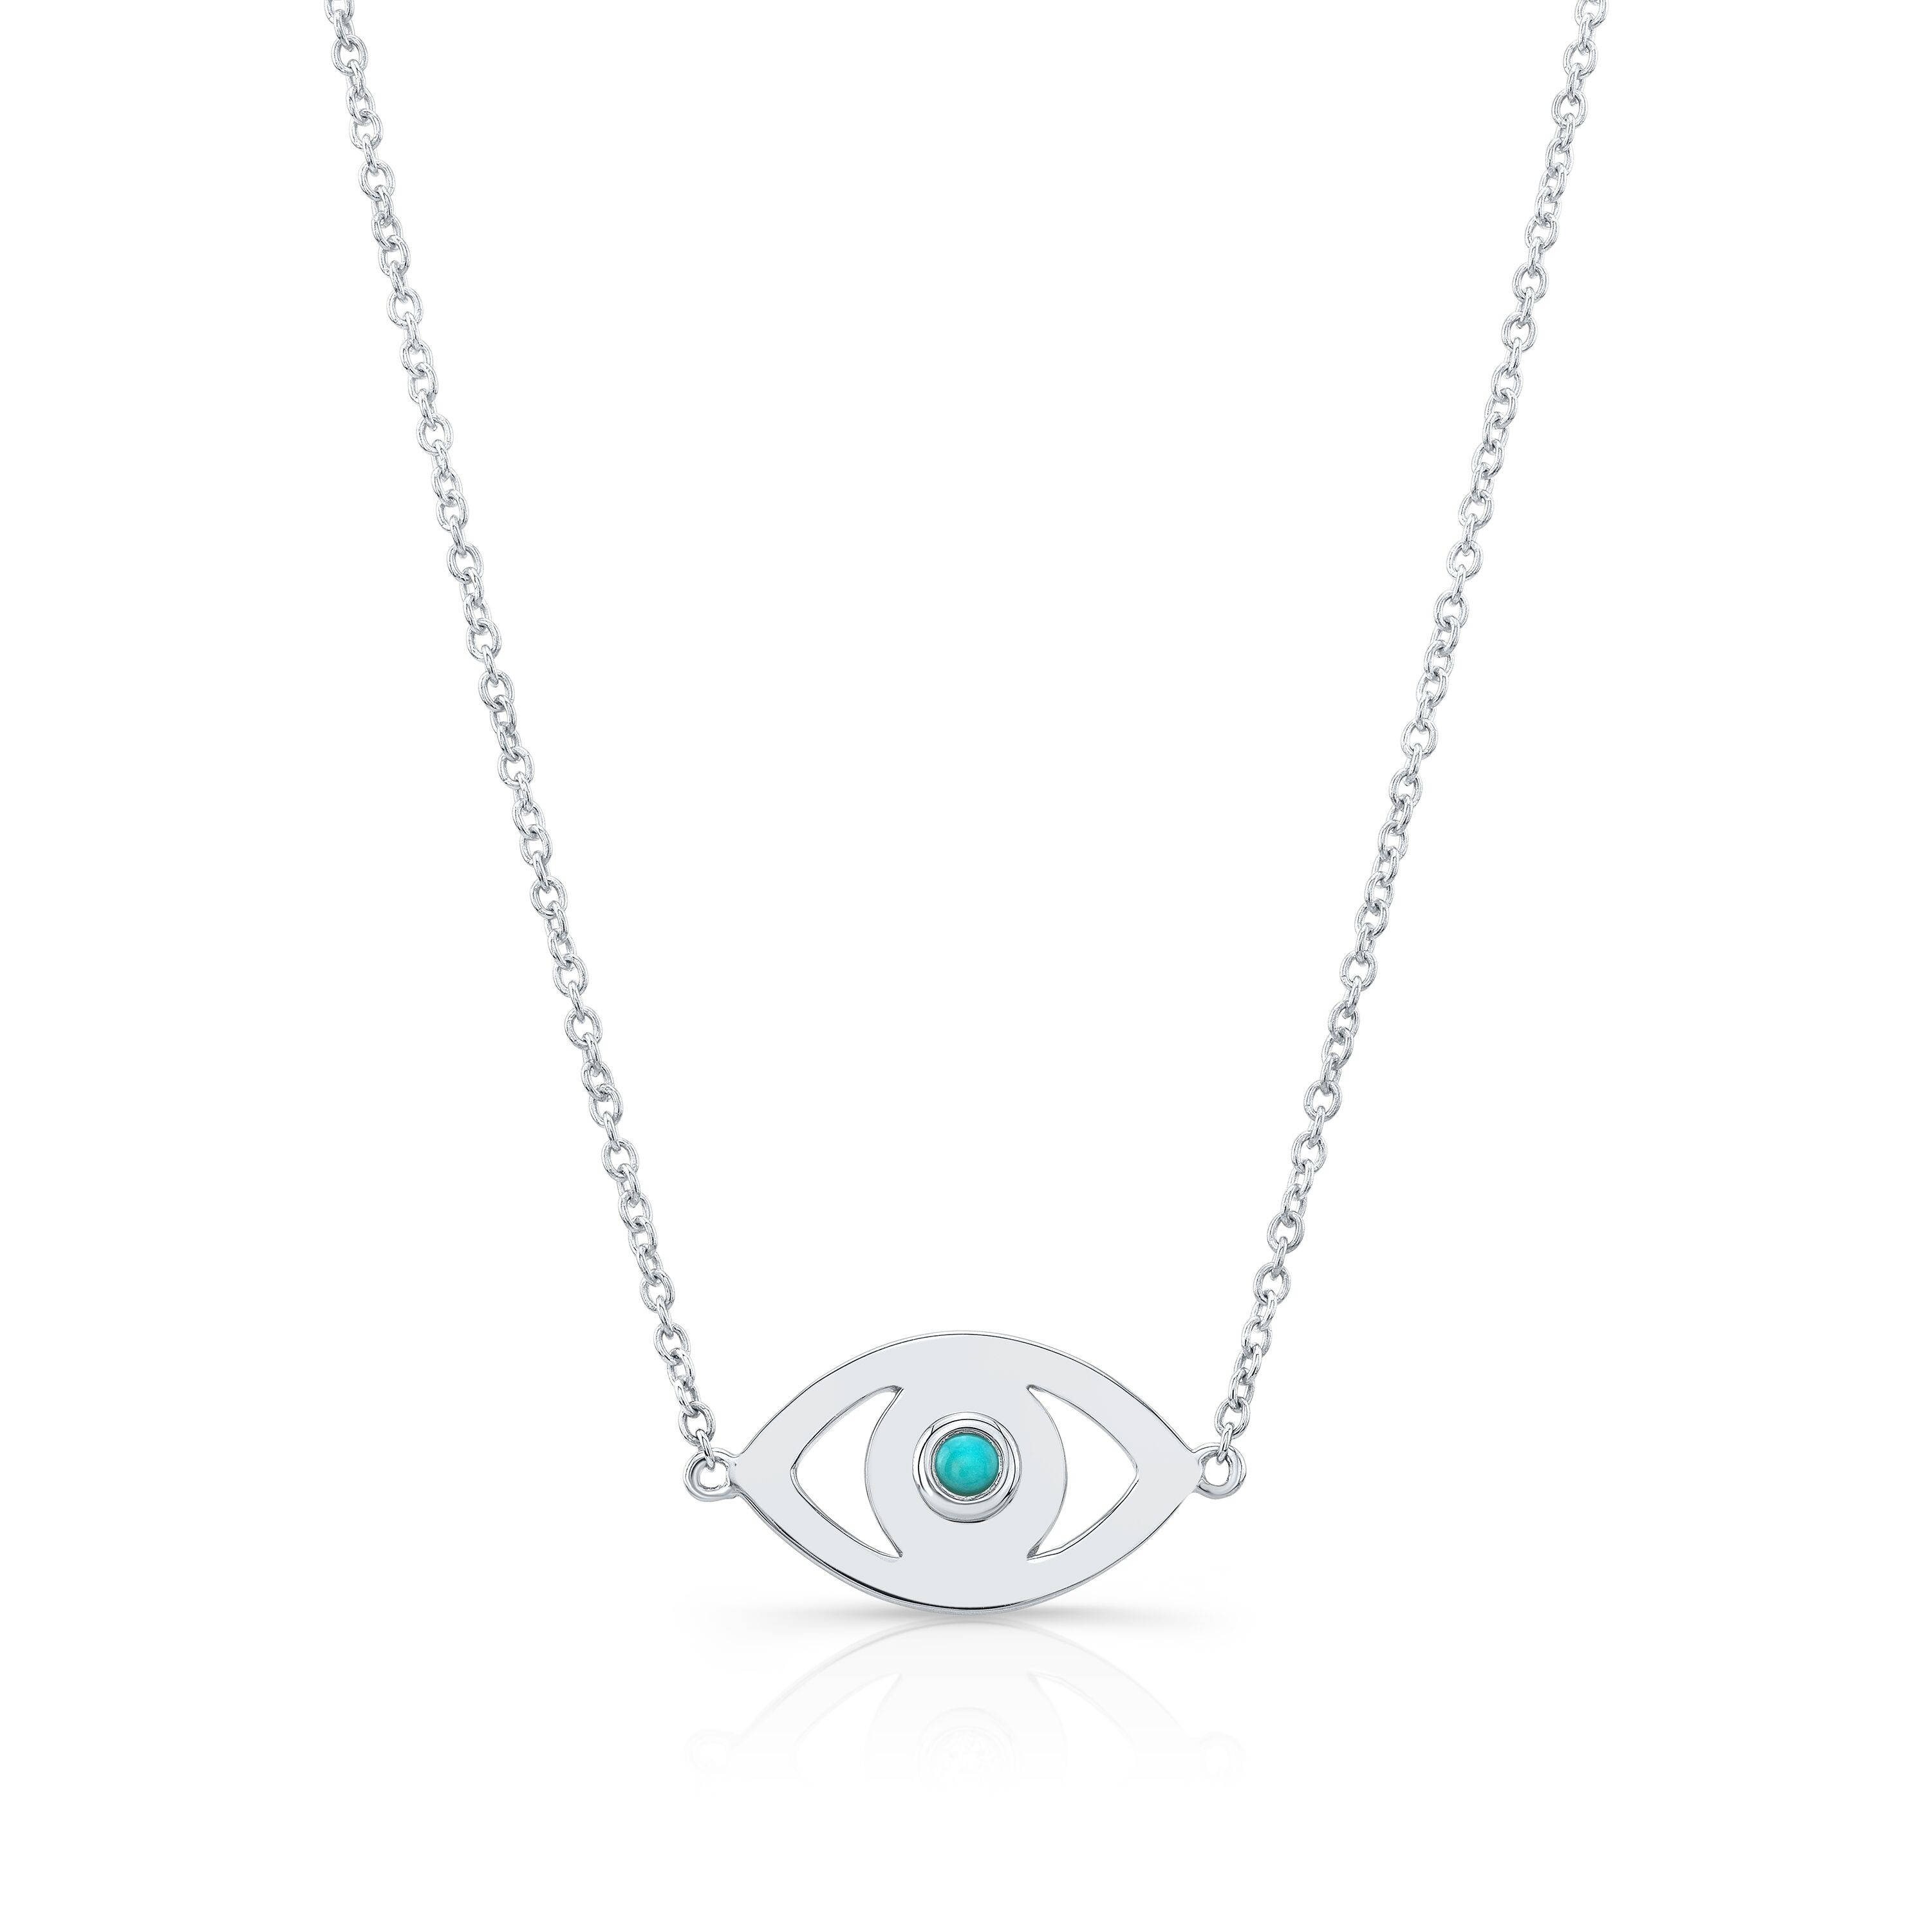 14k White Gold Turquoise Bezel Evil Eye Necklace